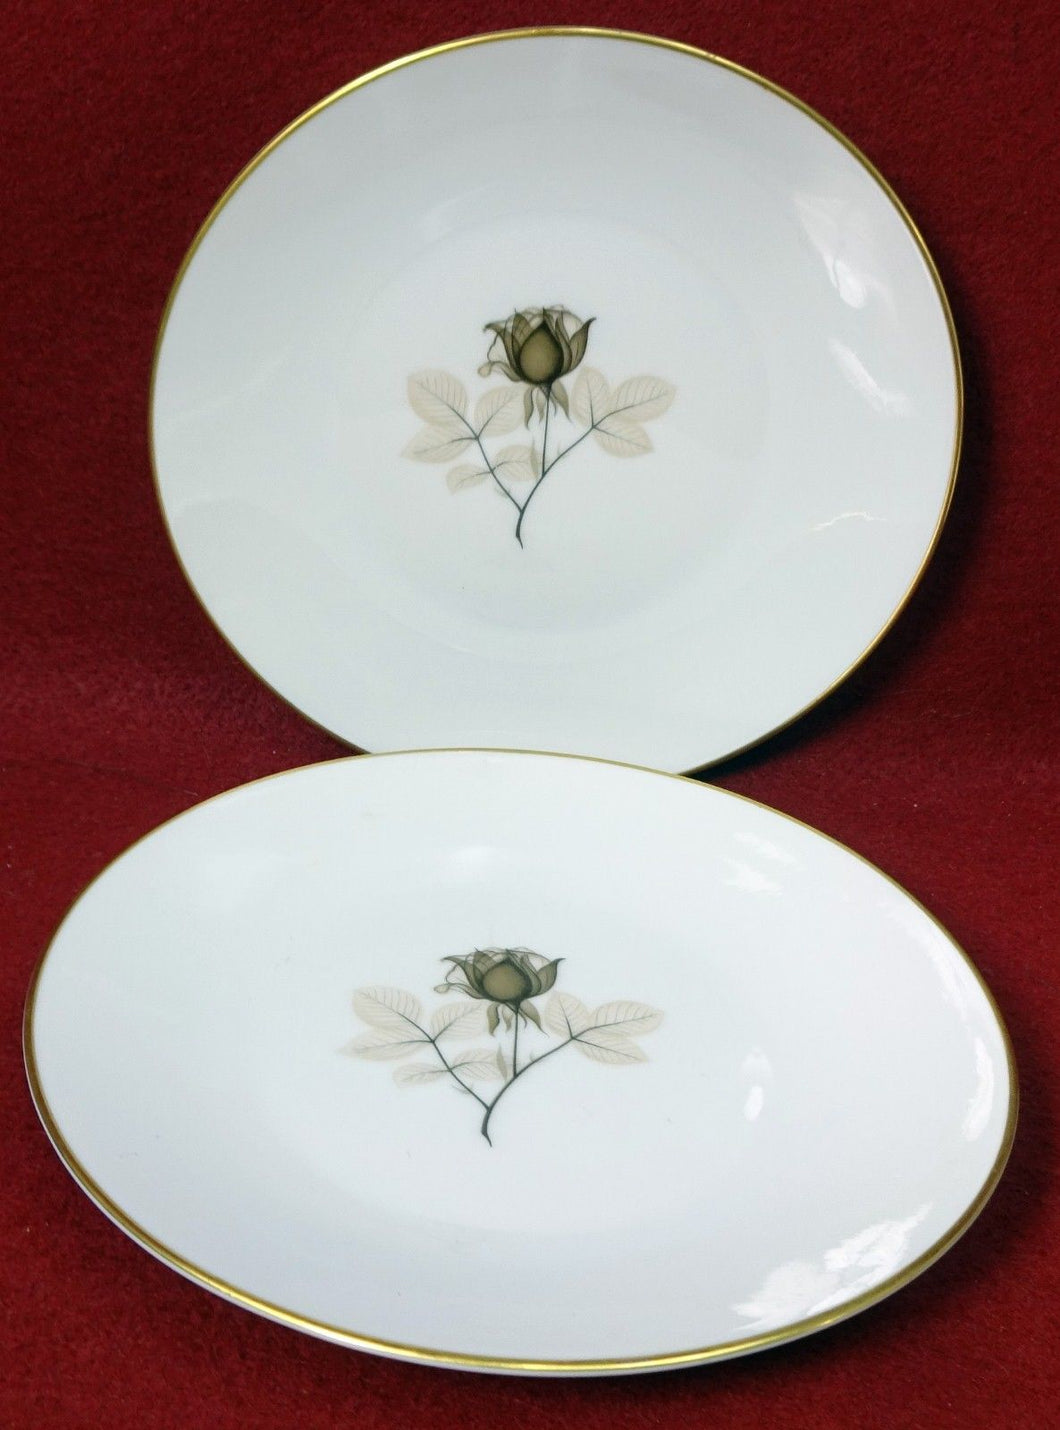 ROSENTHAL china SHADOW ROSE pattern Salad Plate - Set of Two (2) - 7-5/8